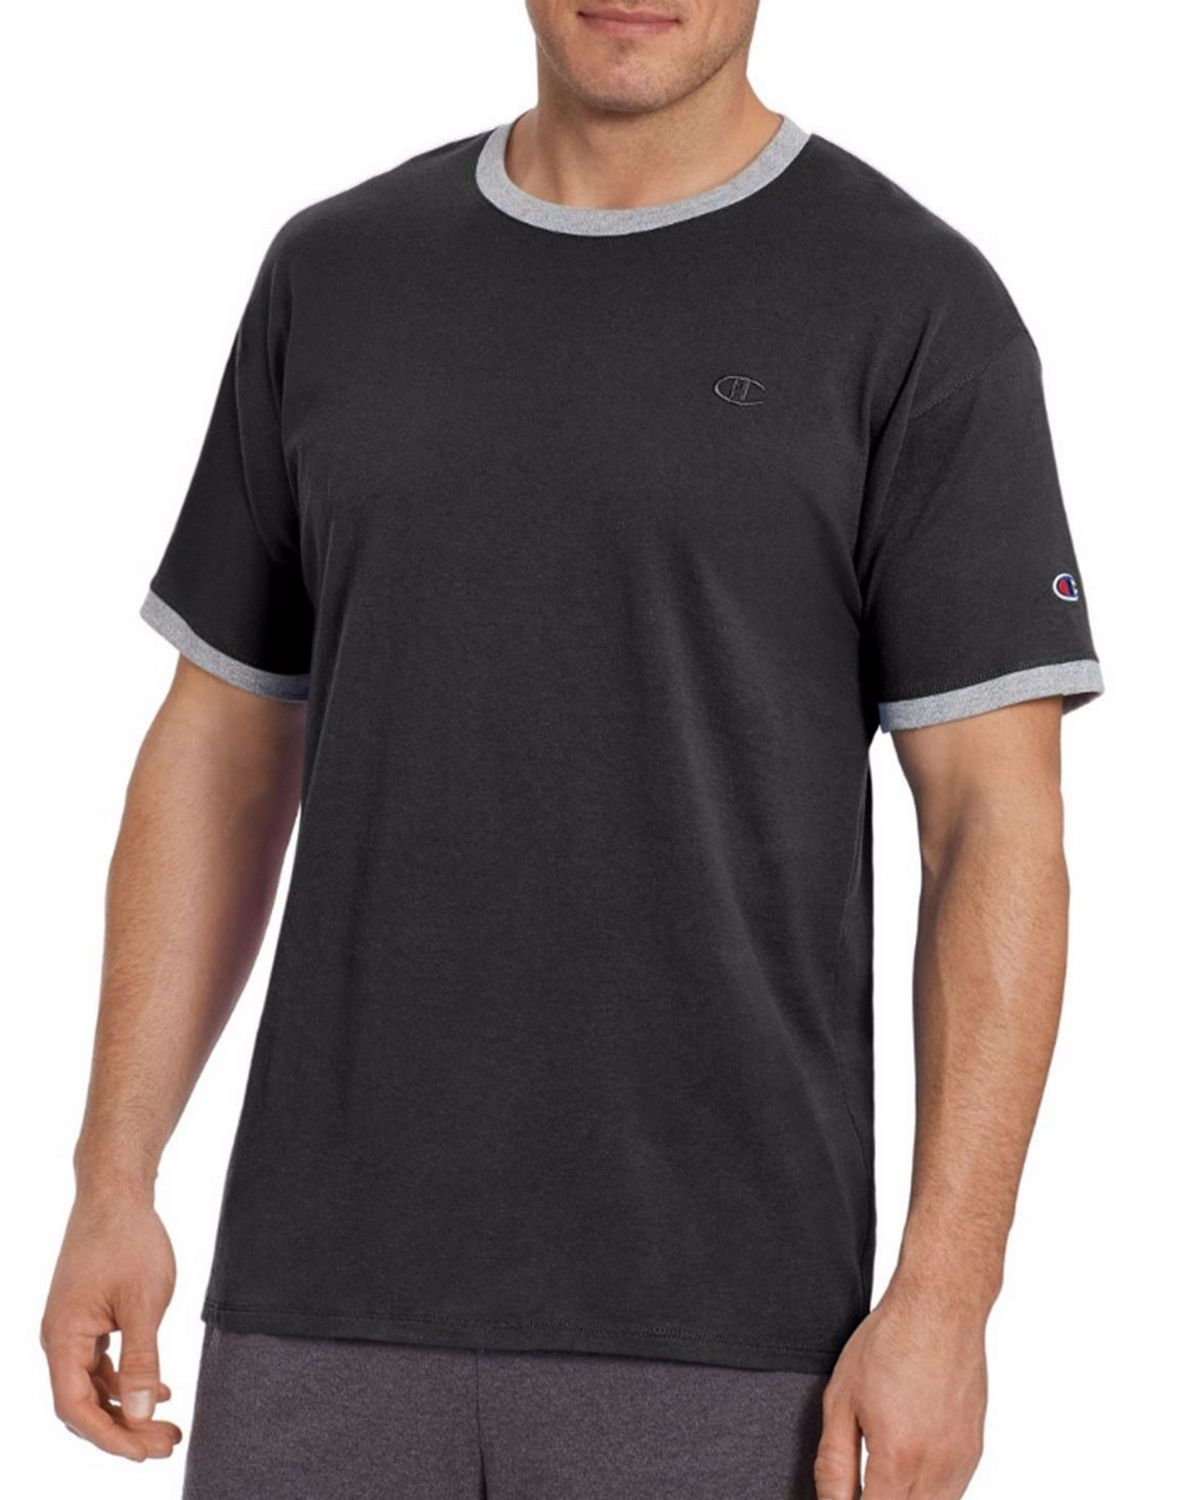 Champion T0220 Mens Ringer Tee - Scarlet/Oxford Gray Heather - M T0220